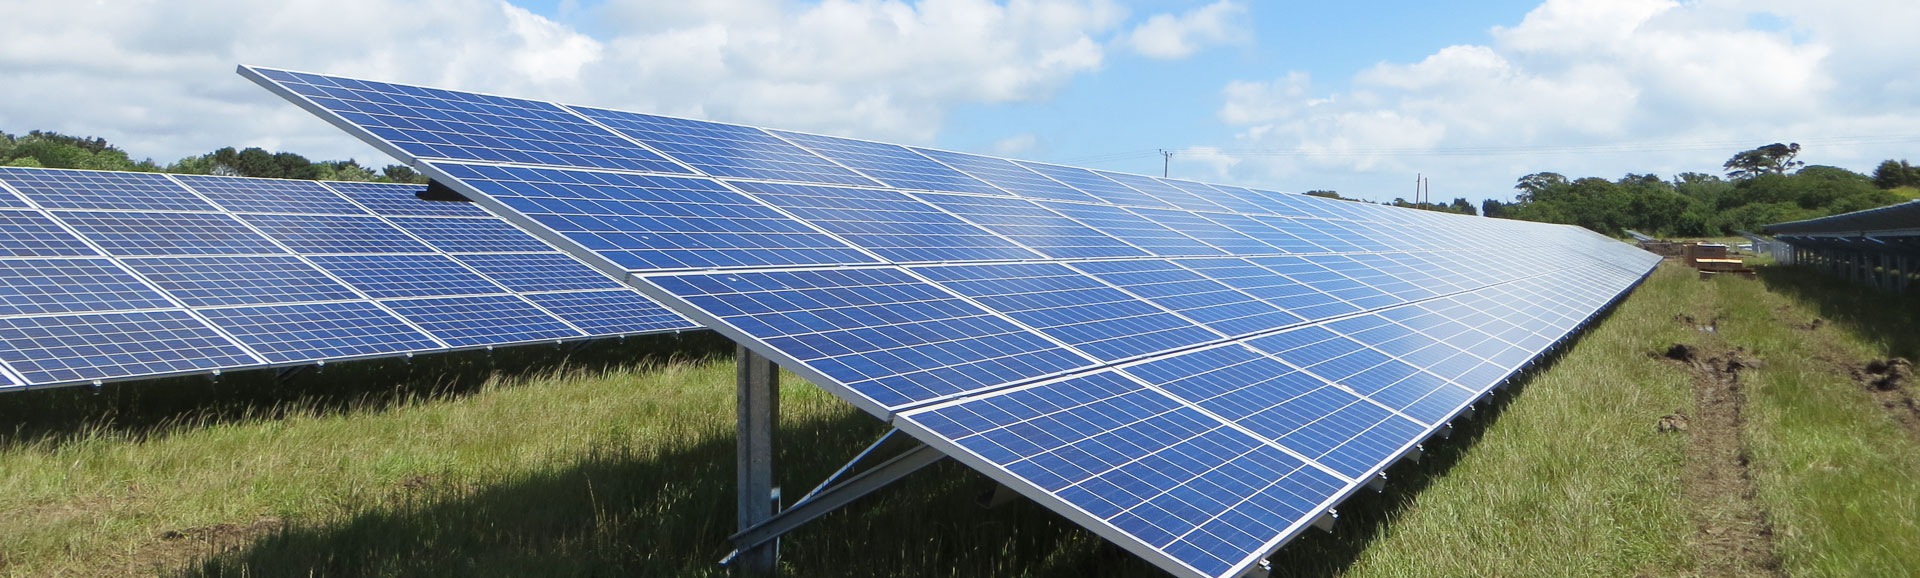 Energy 4 all west solent solar for Solar ranch